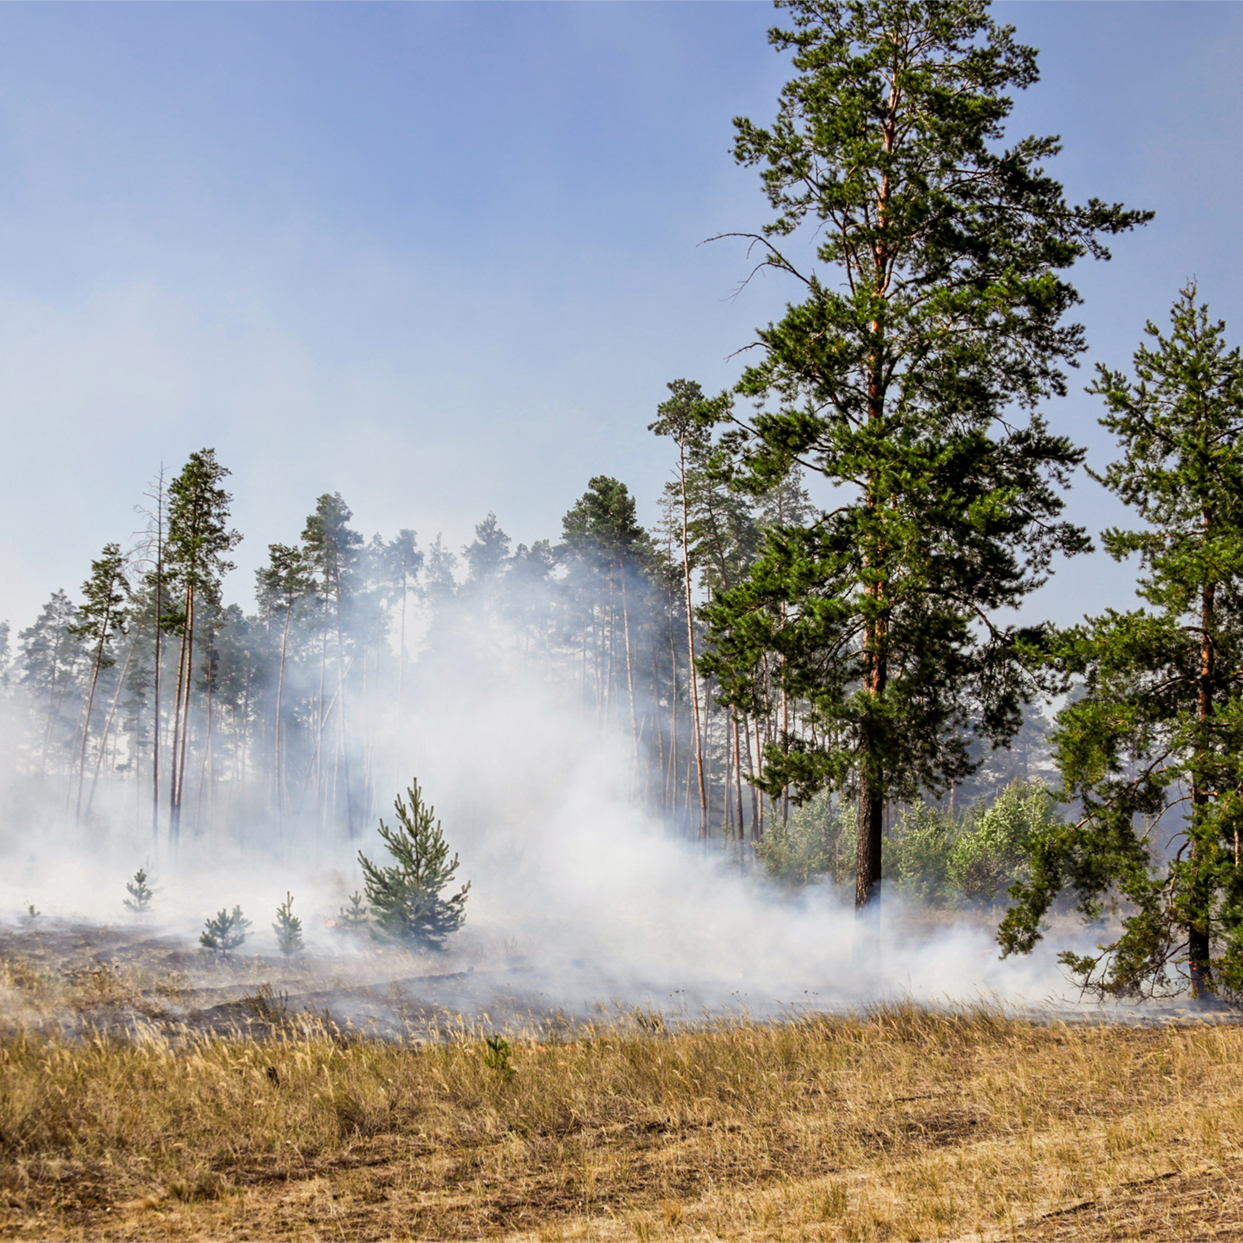 A wildfire in forest due to continuous dry weather in summe